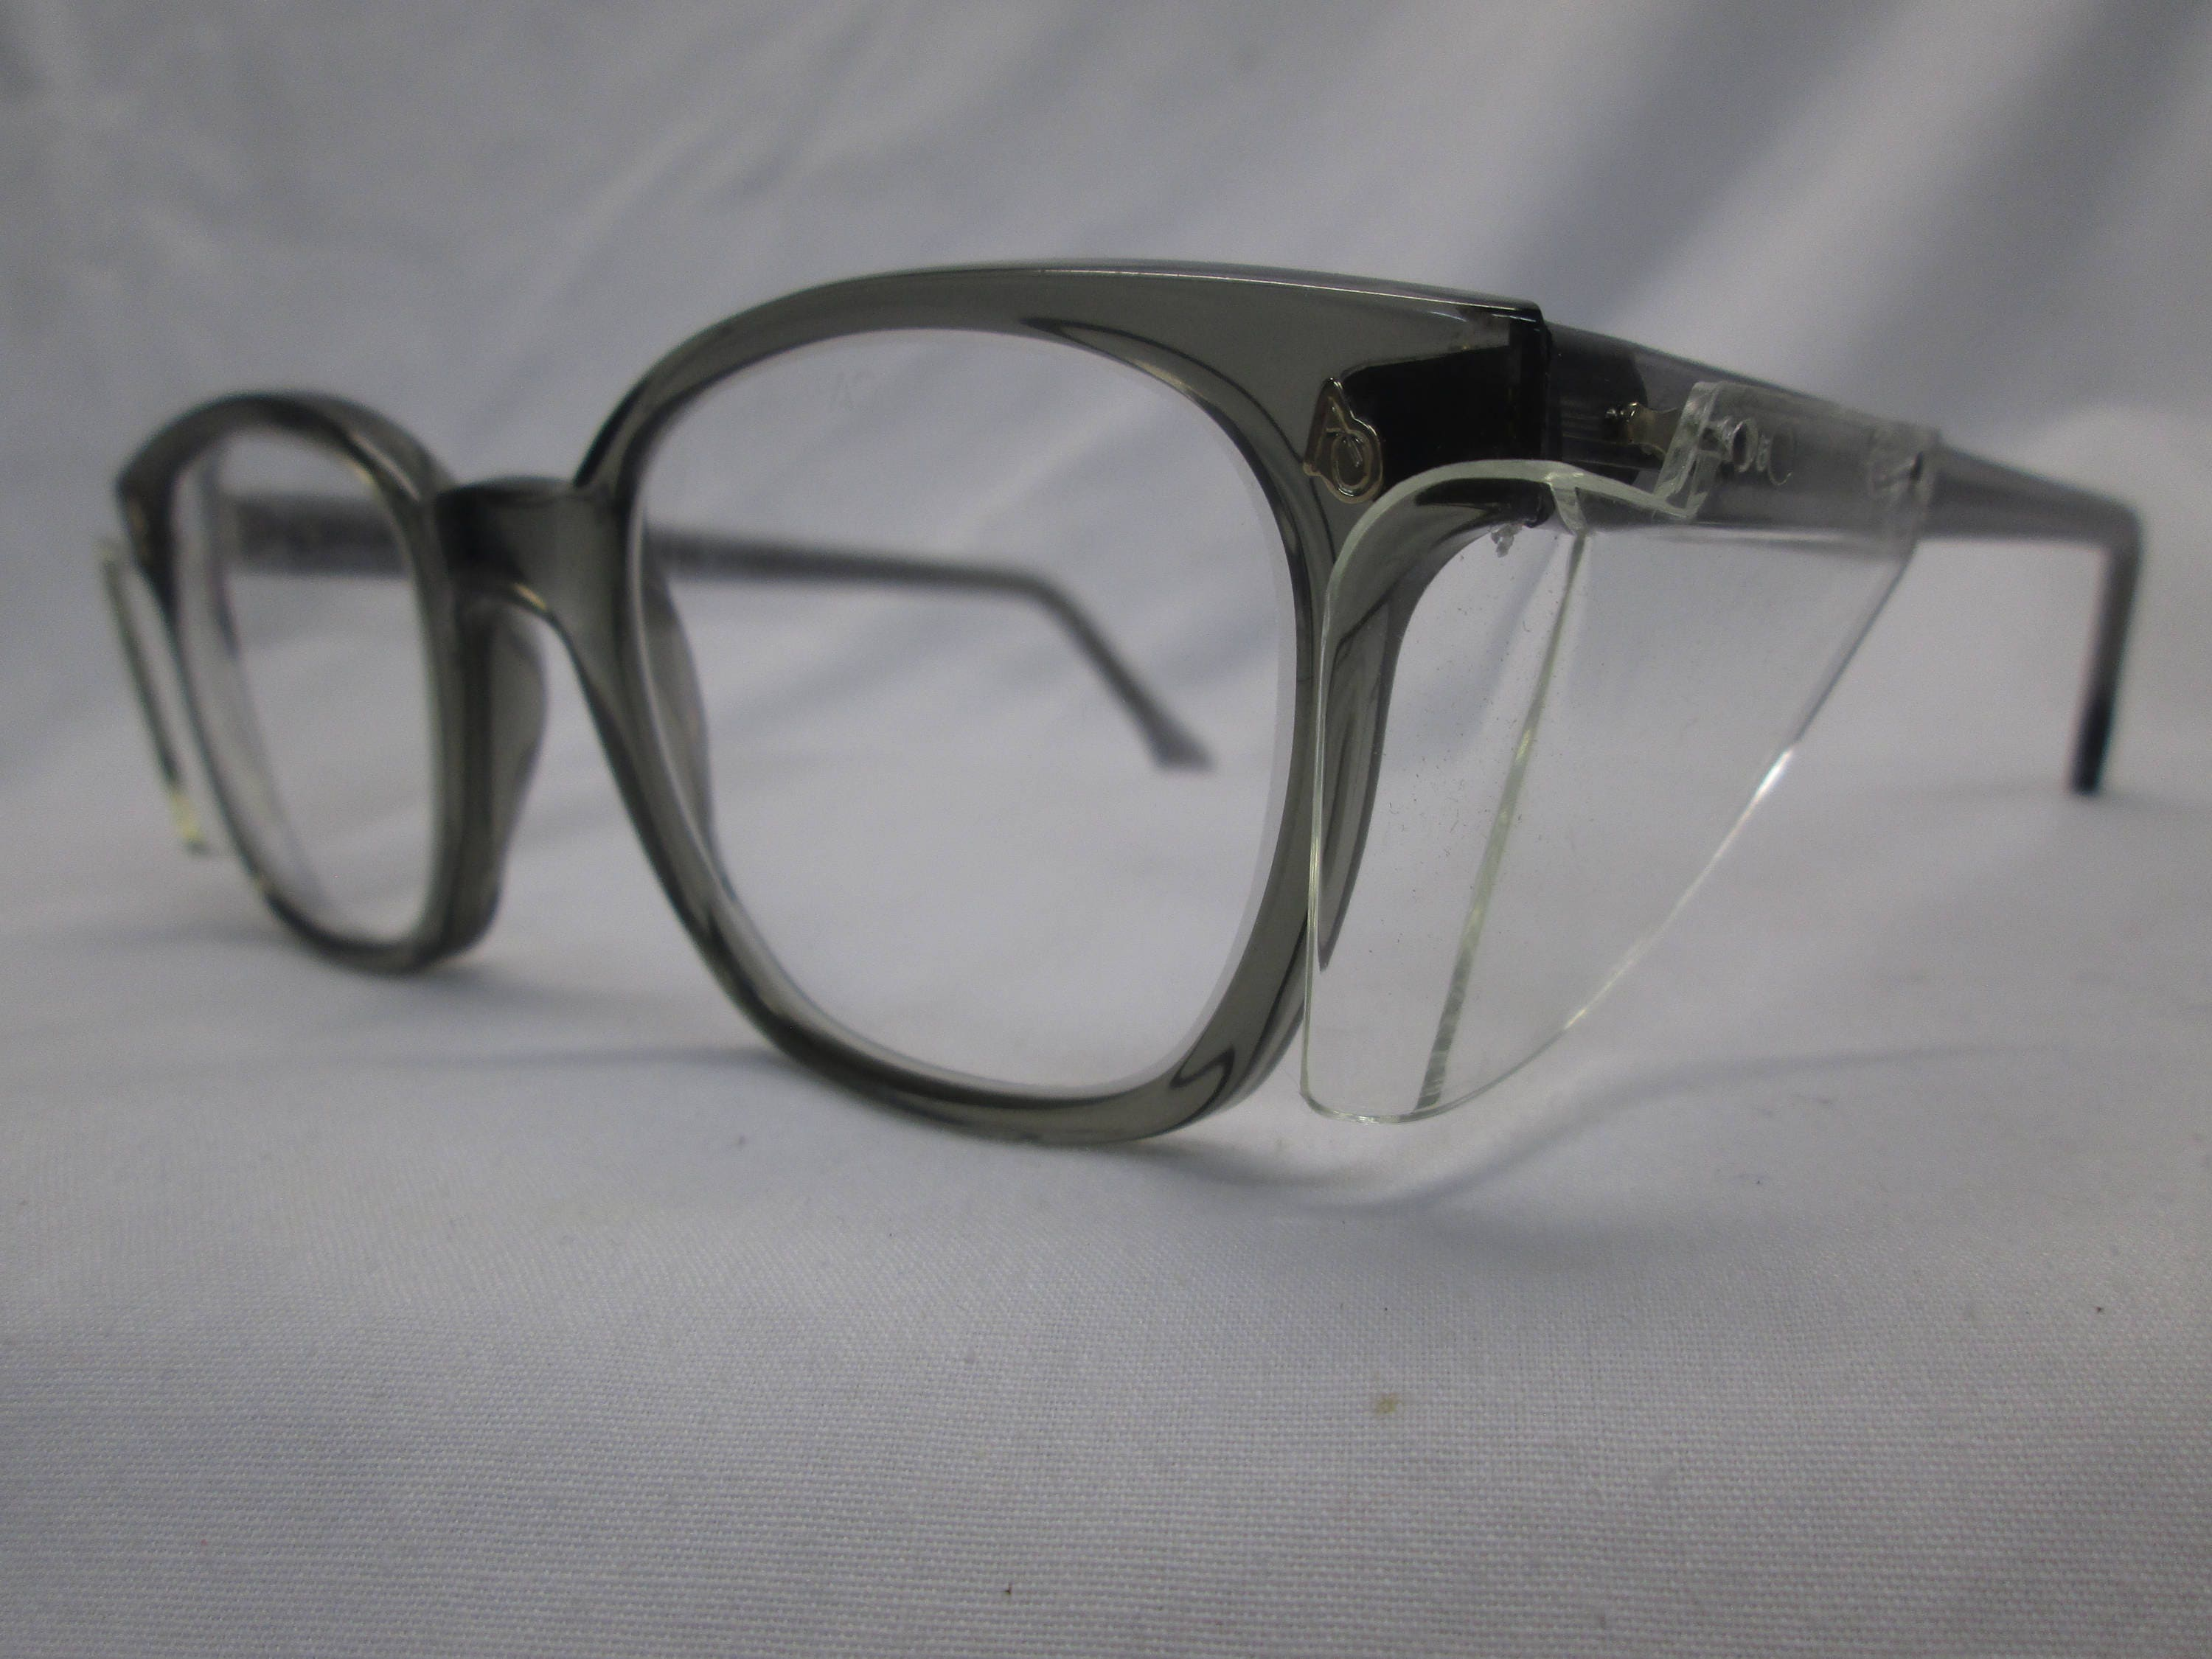 American Optical AO Vintage Safety Glasses NOS Gray Clear